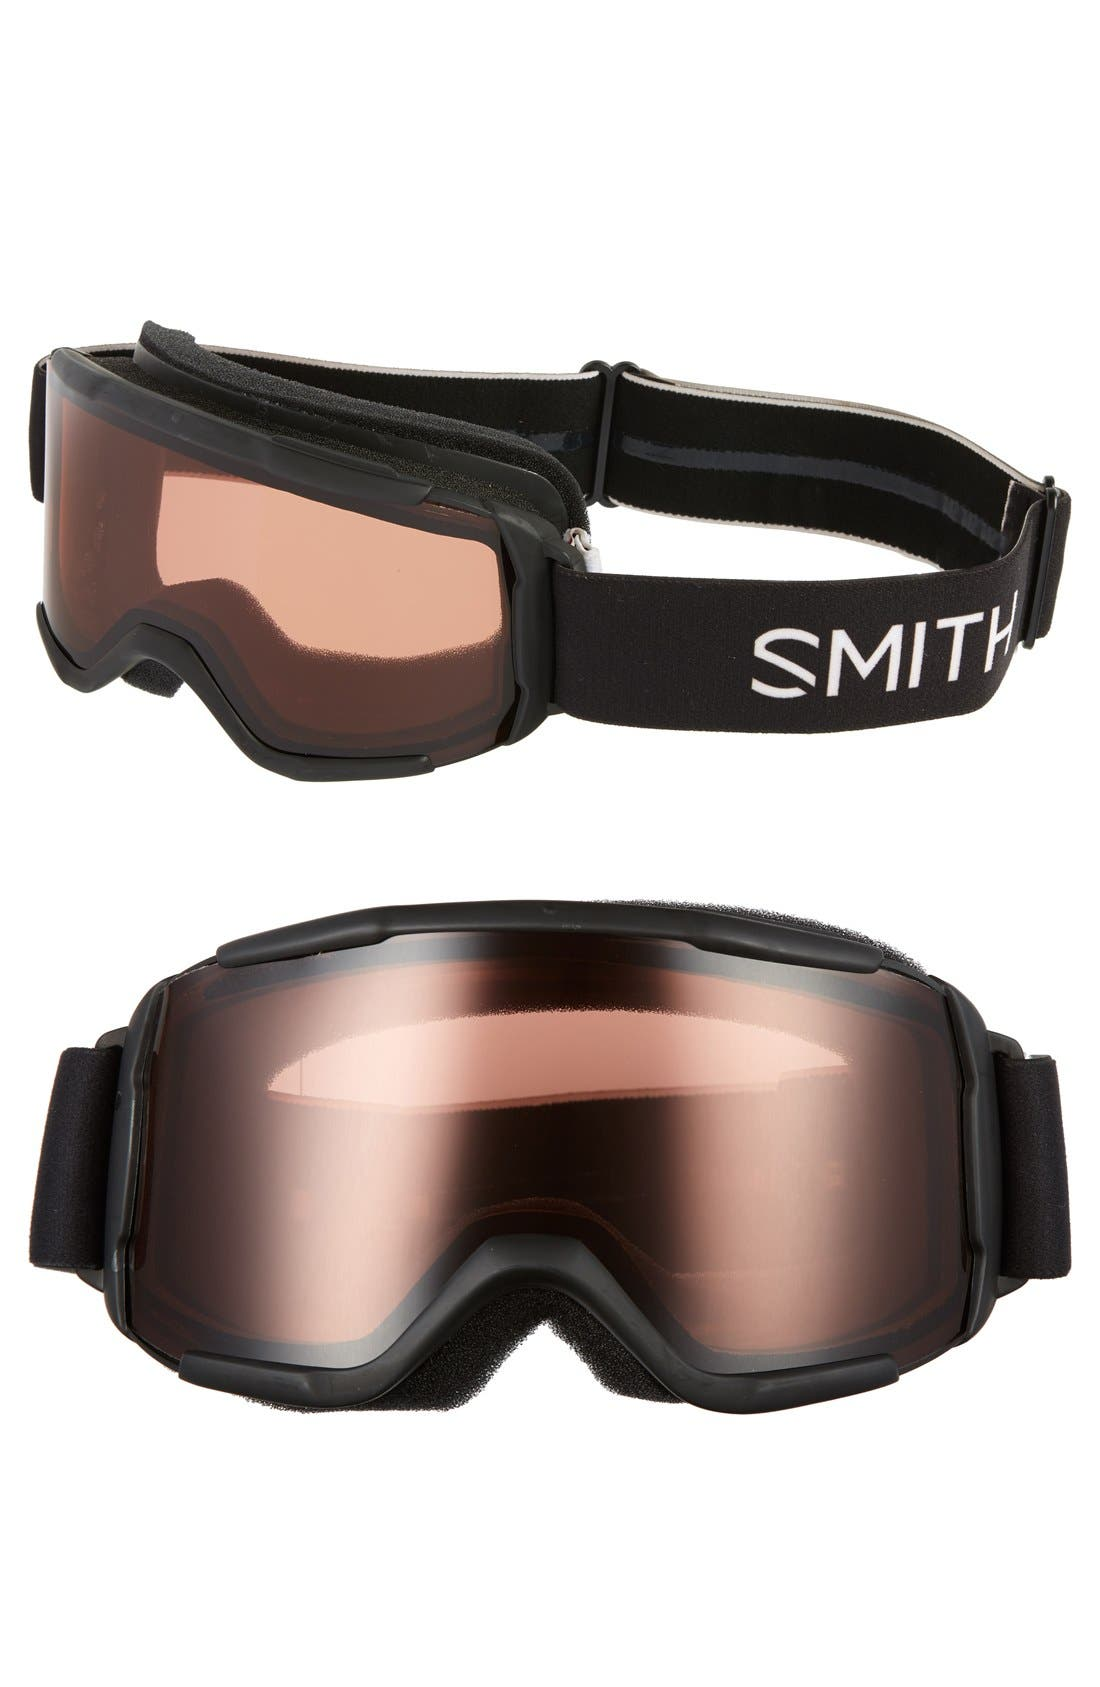 Smith 'Daredevil' Snow Goggles (Girls)